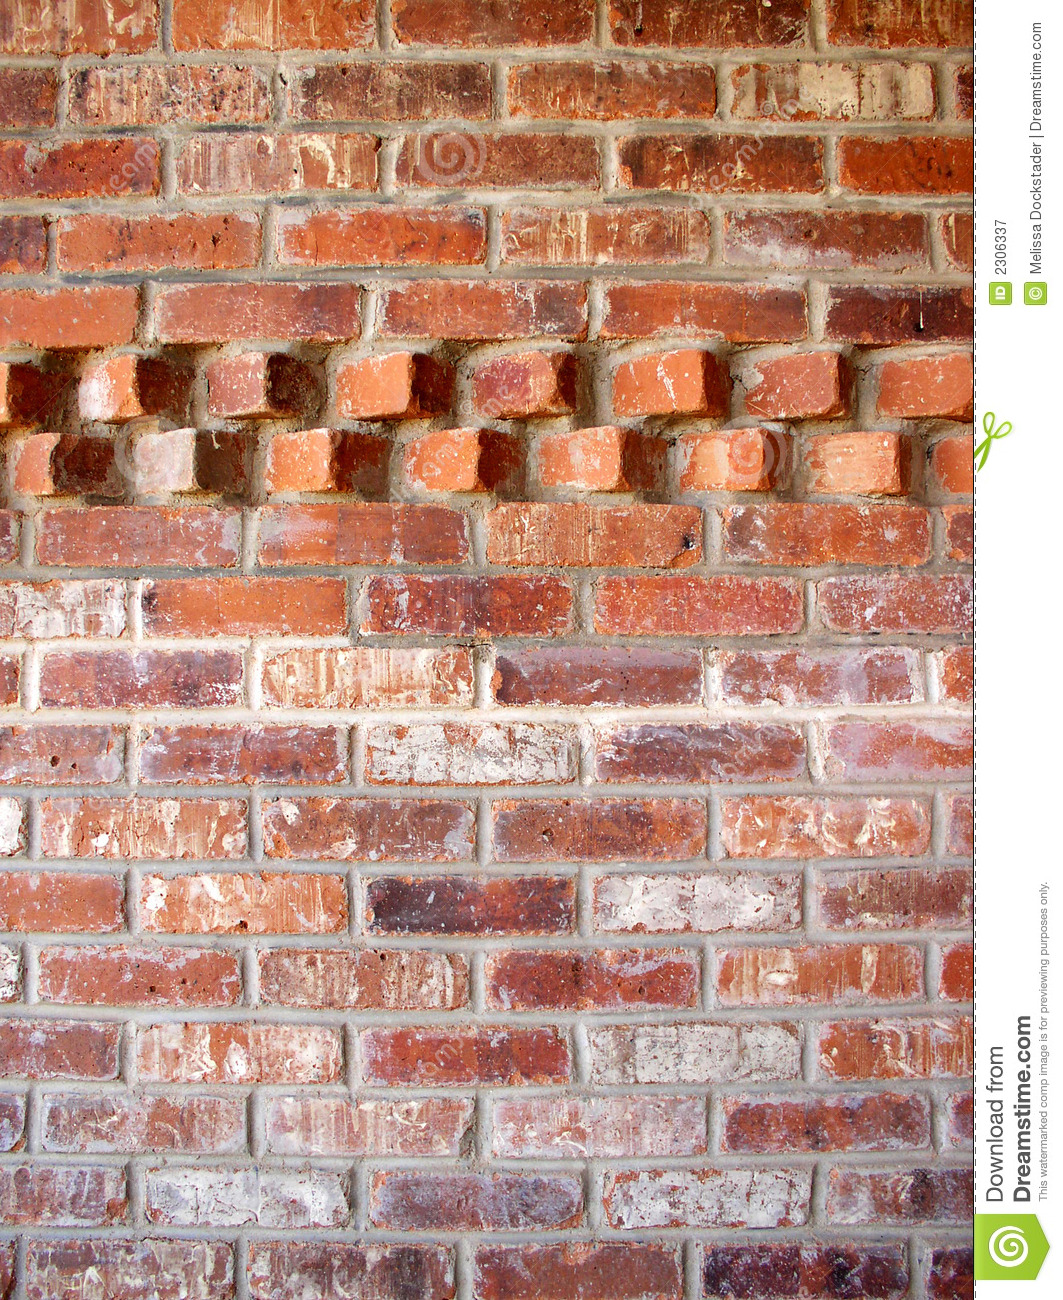 Brick Wall With Accent Pattern Royalty Free Stock